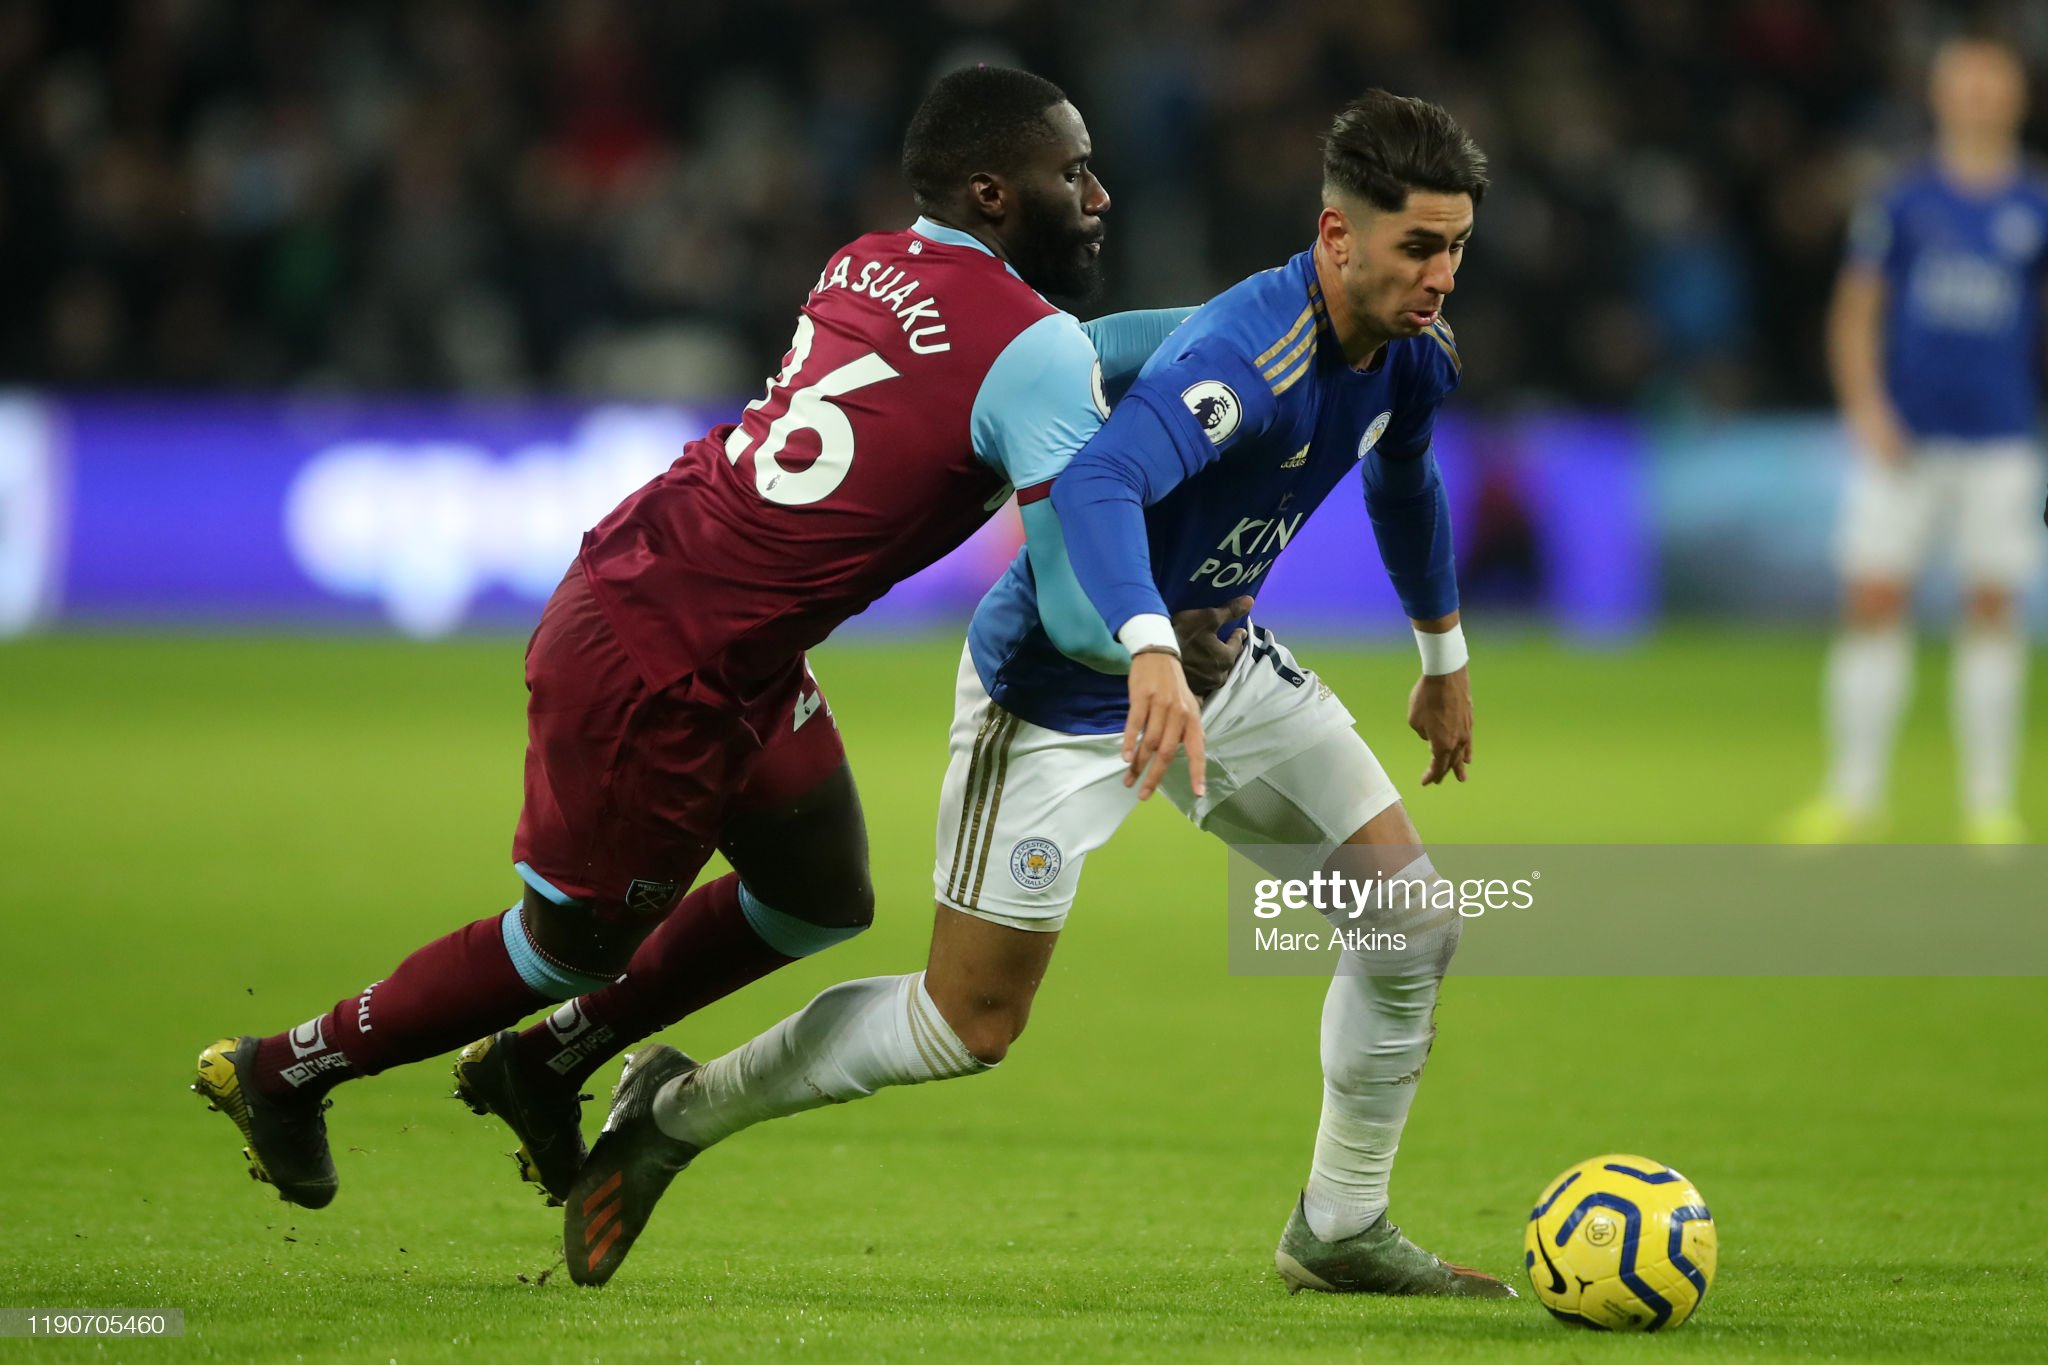 Leicester v West Ham preview, prediction and odds